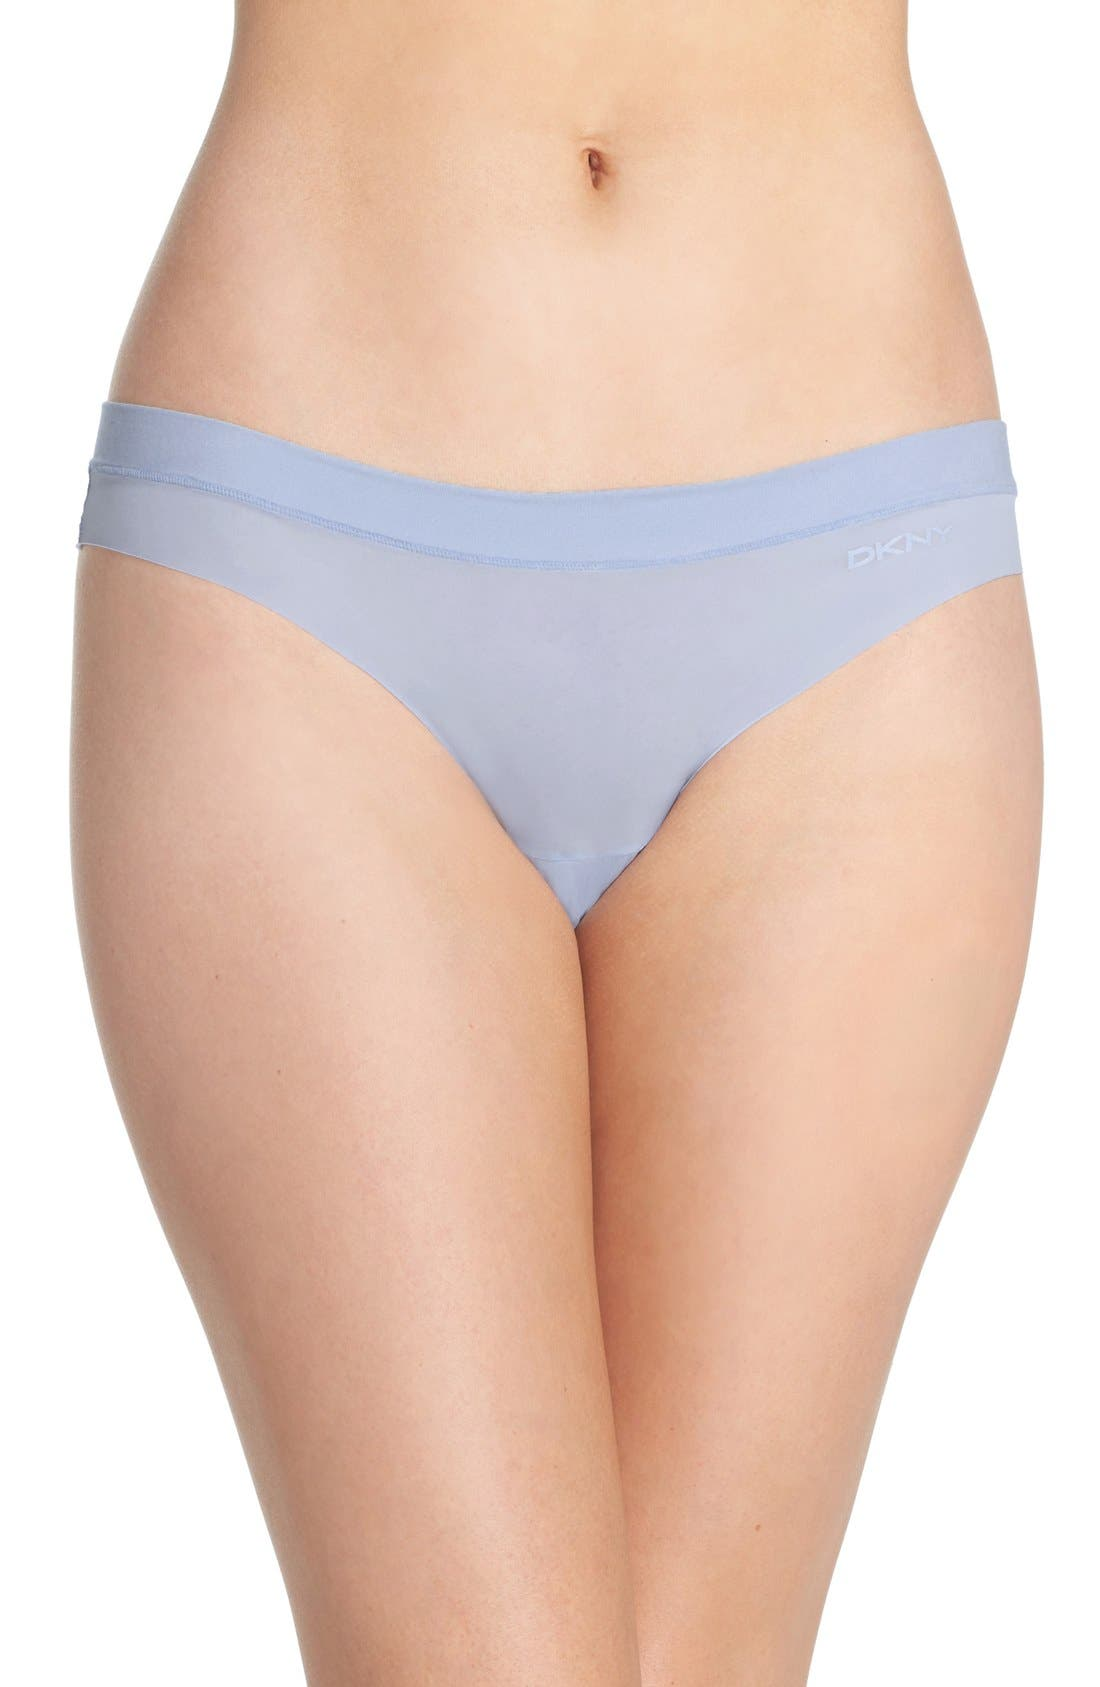 Main Image - DKNY 'Fusion' Thong (3 for $30)